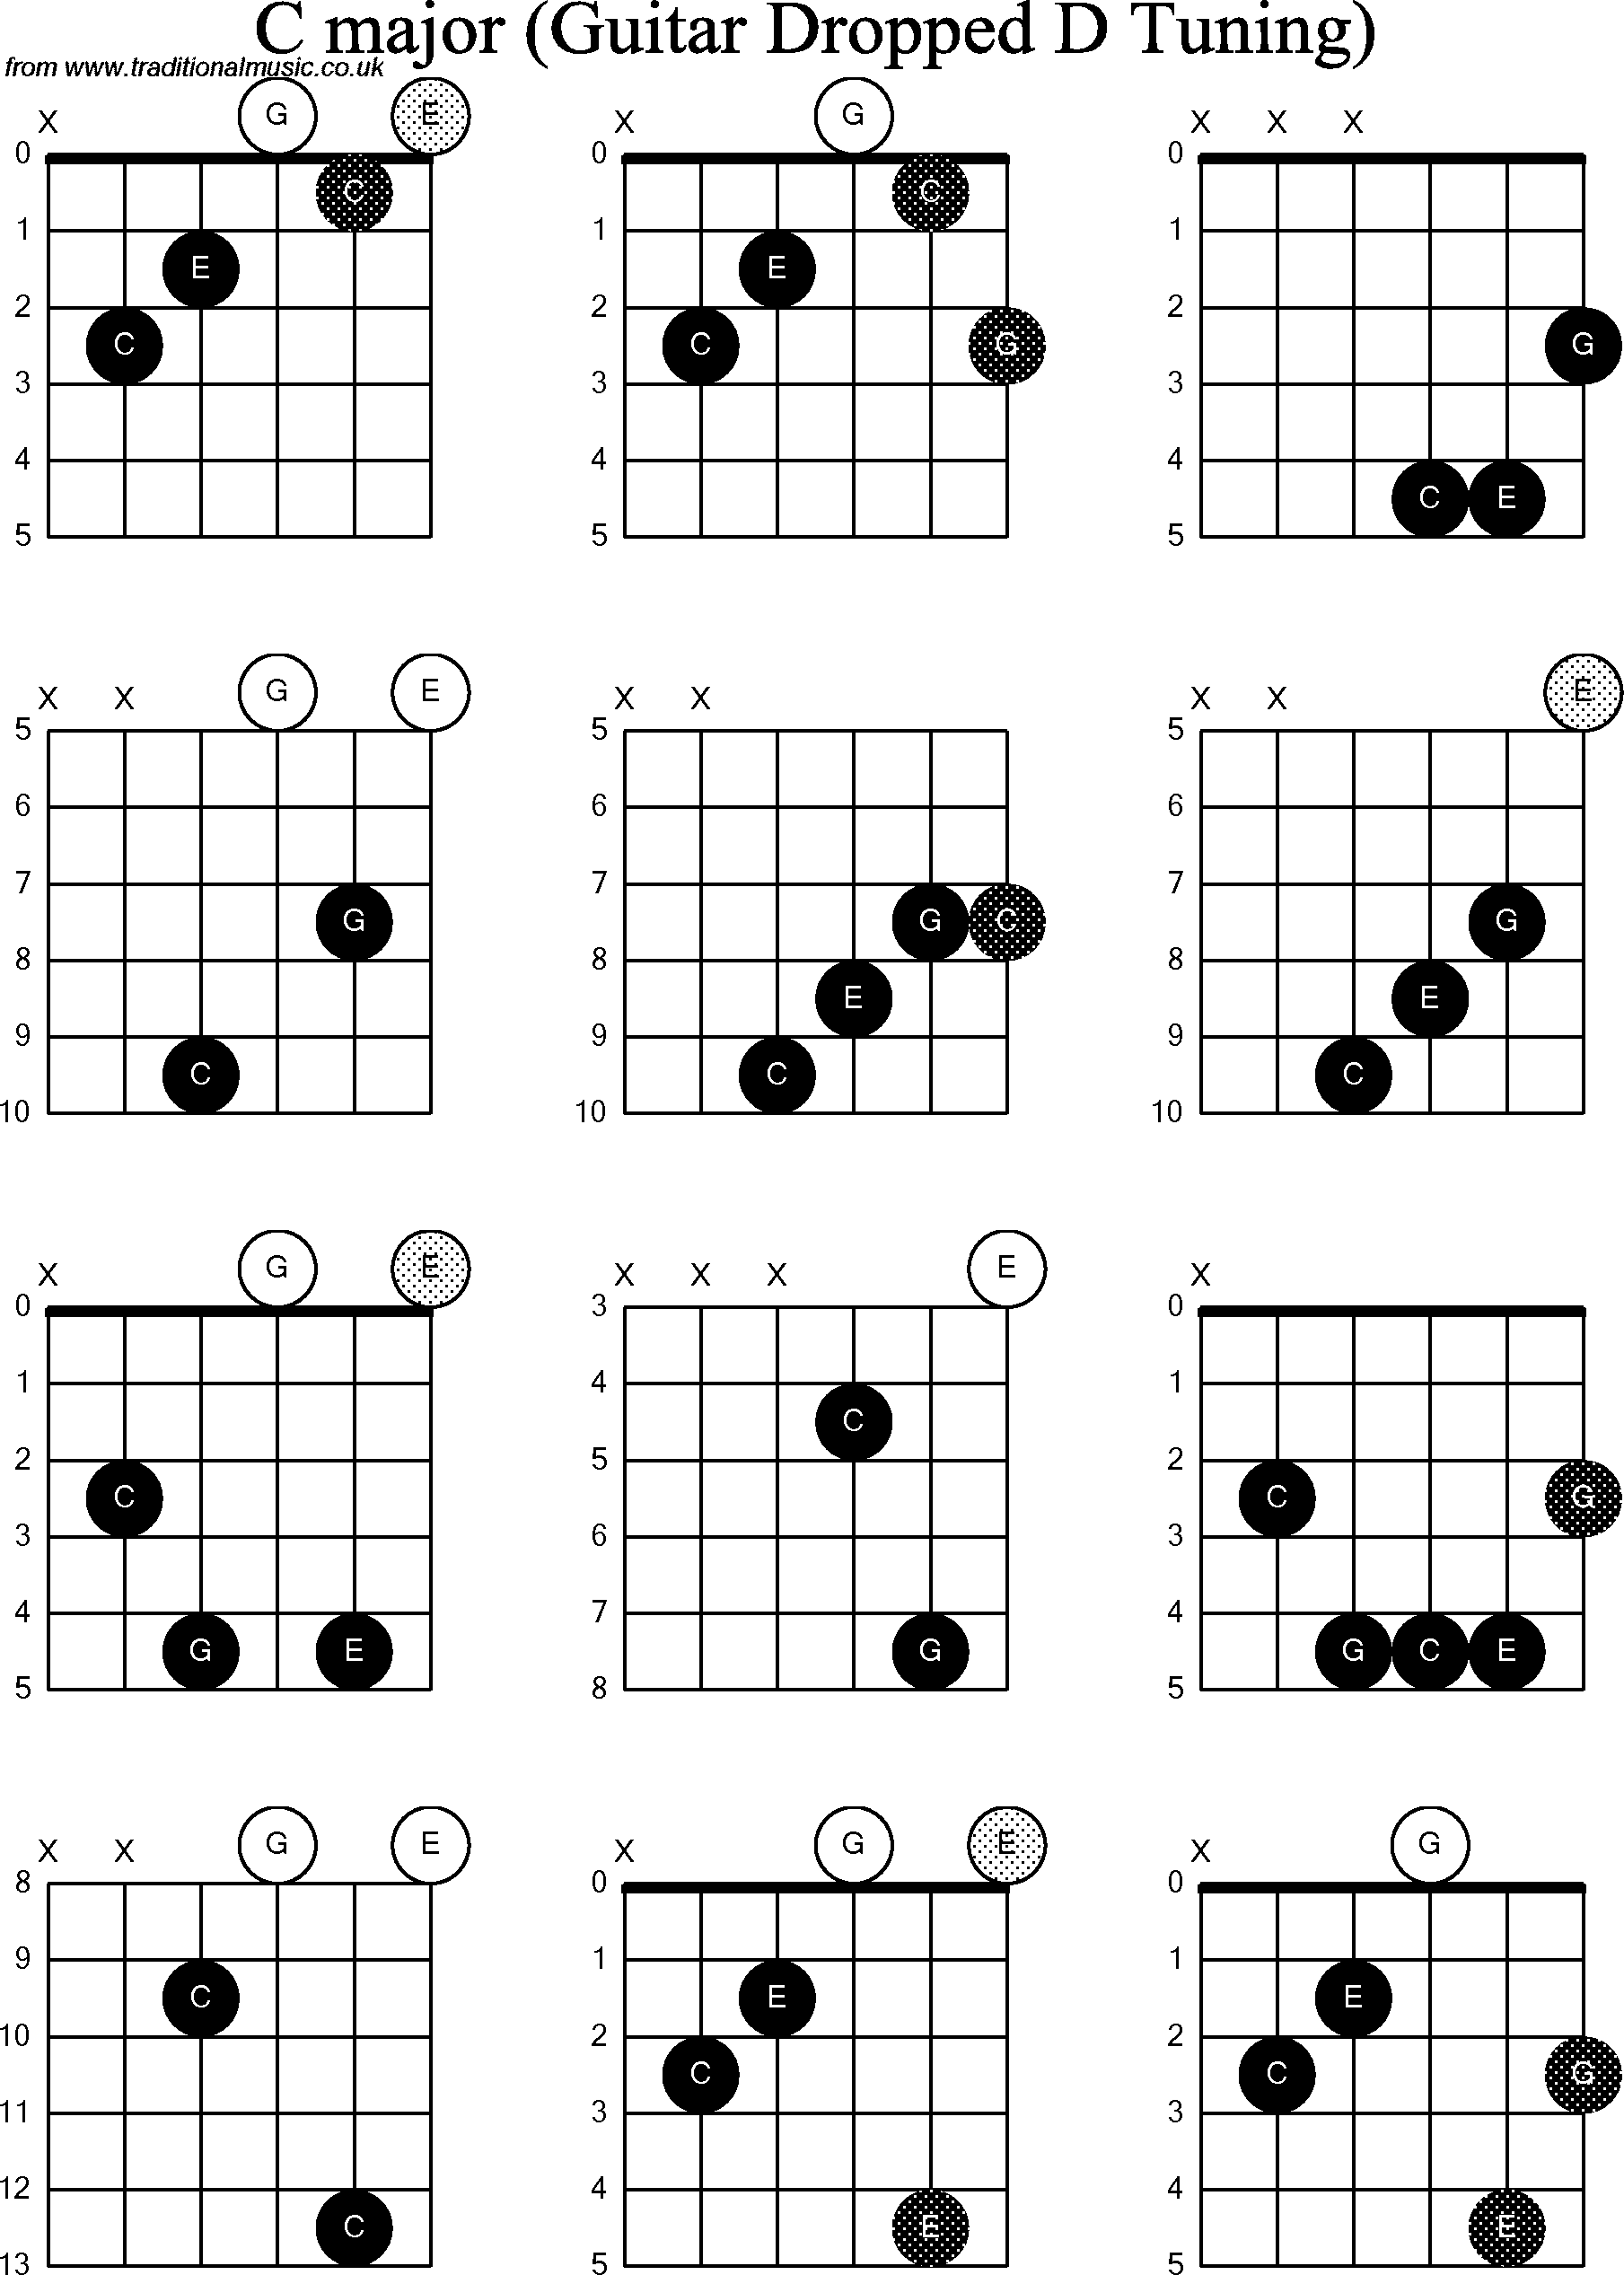 chord diagrams for dropped d guitar dadgbe   c